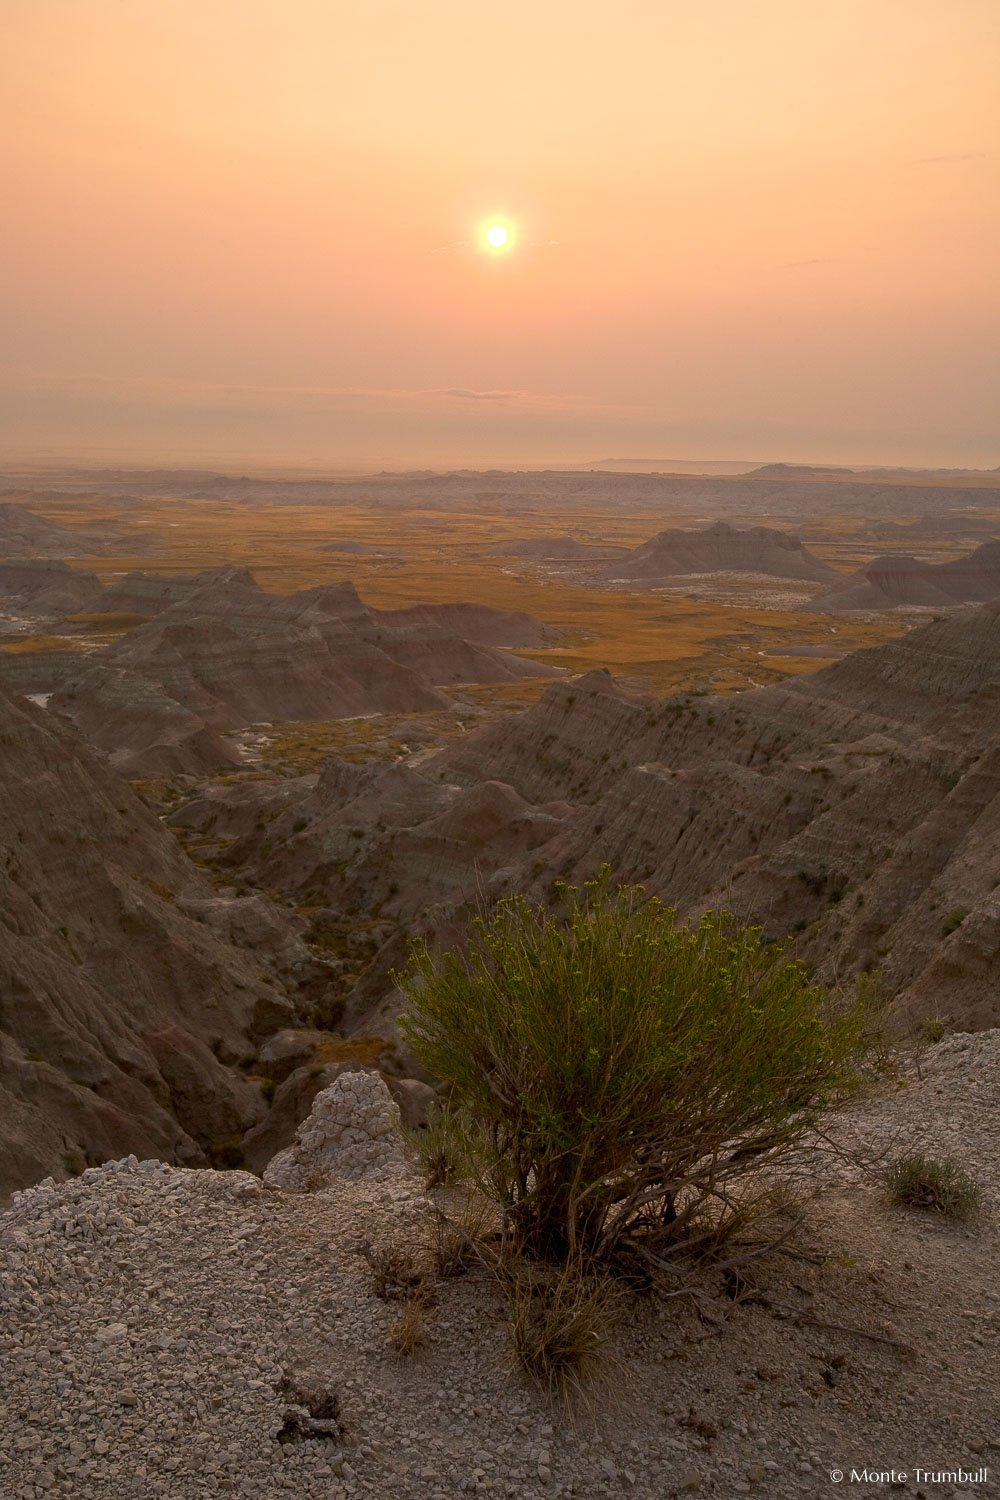 MT-20070816-064113-0013-Edit-South-Dakota-Badlands-National-Park-sunrise-haze.jpg